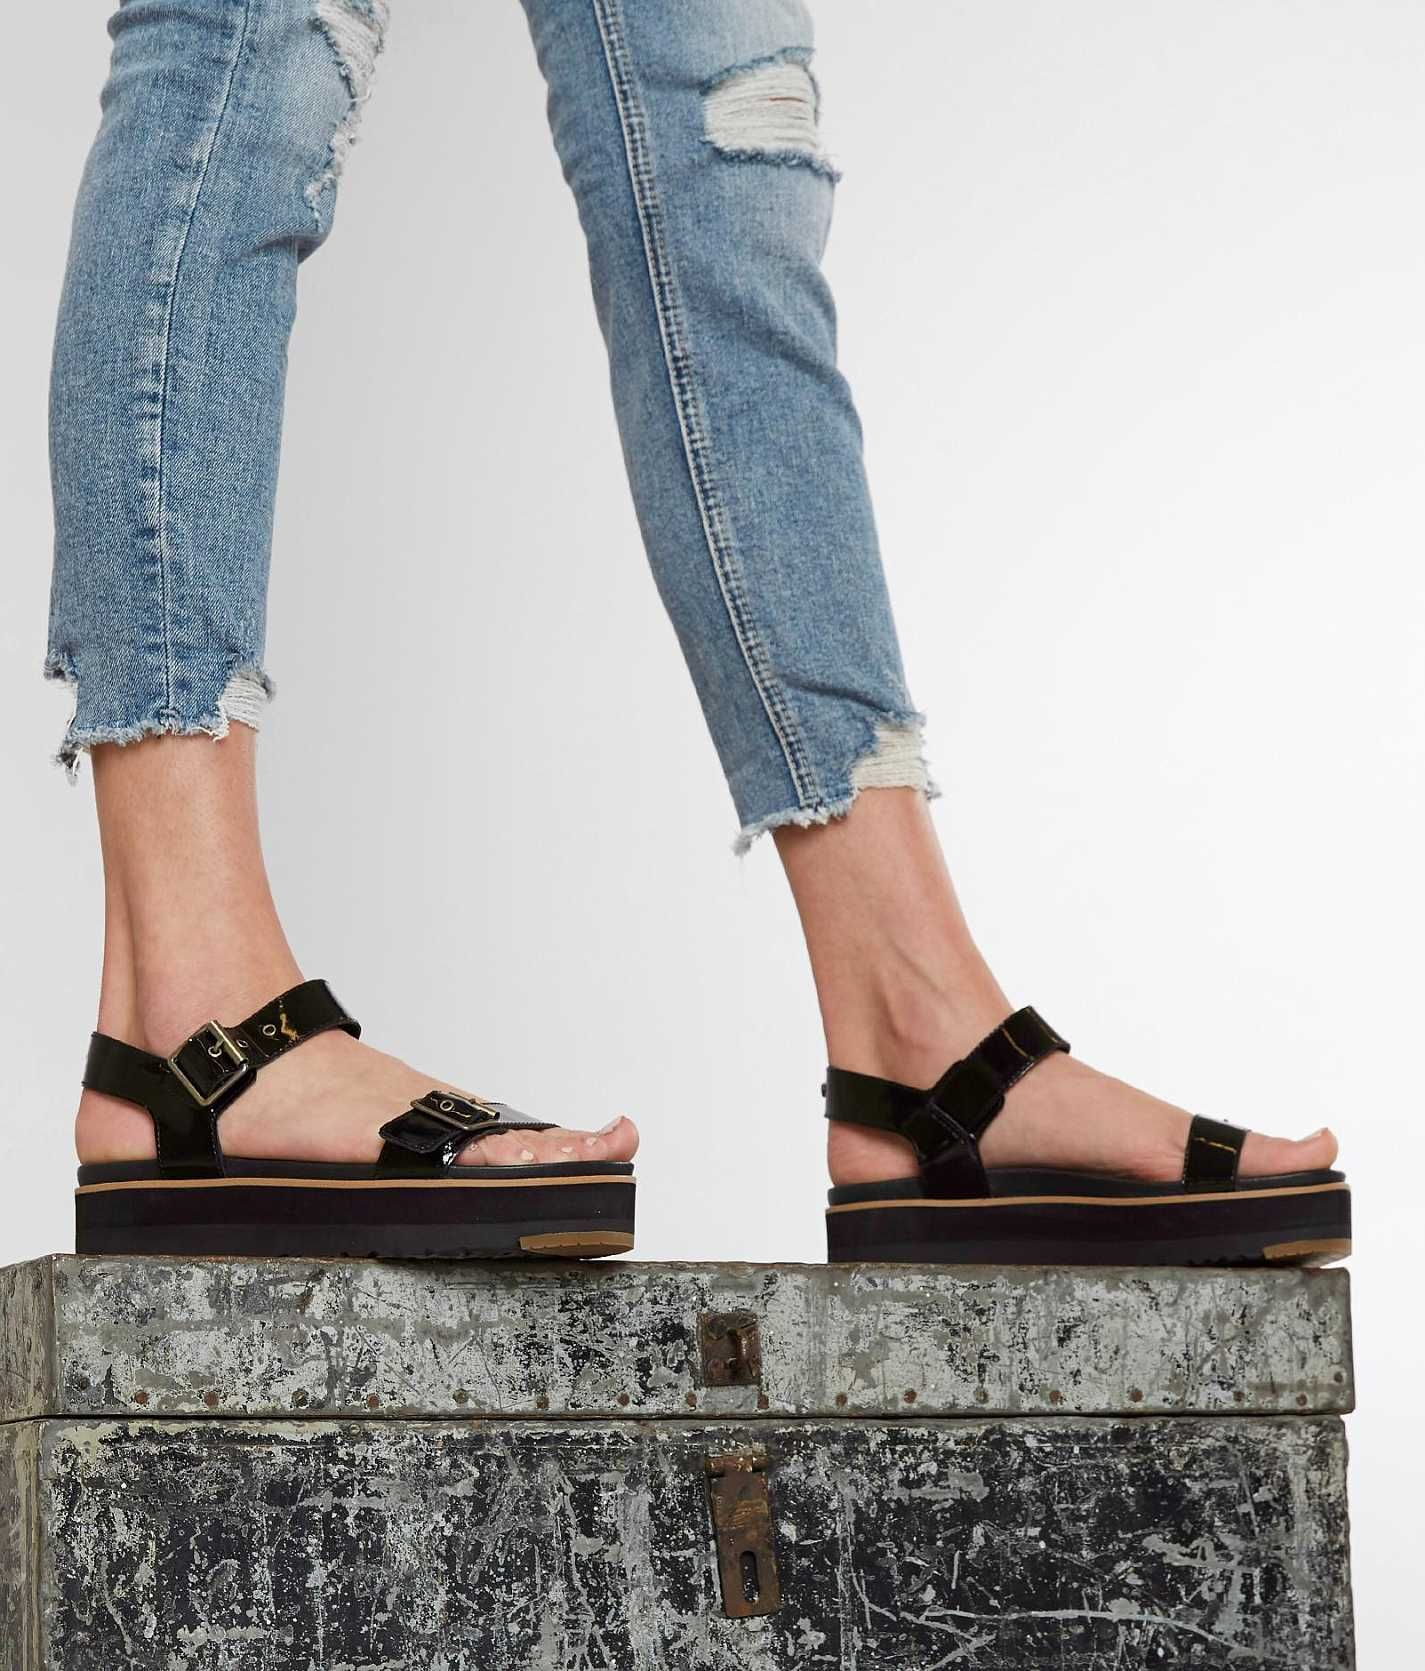 UGG® Angie Sandal - Women's Shoes in